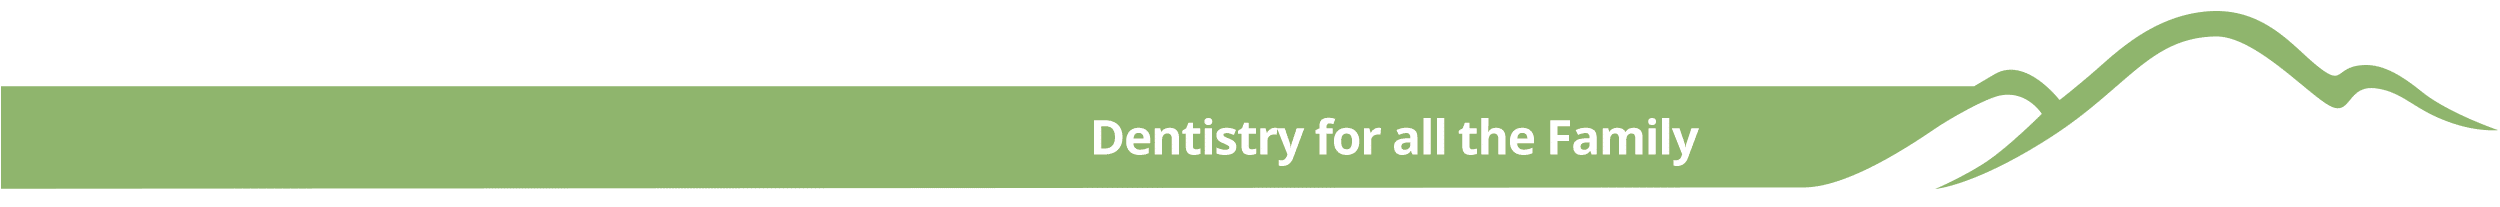 Dentistry for all the family